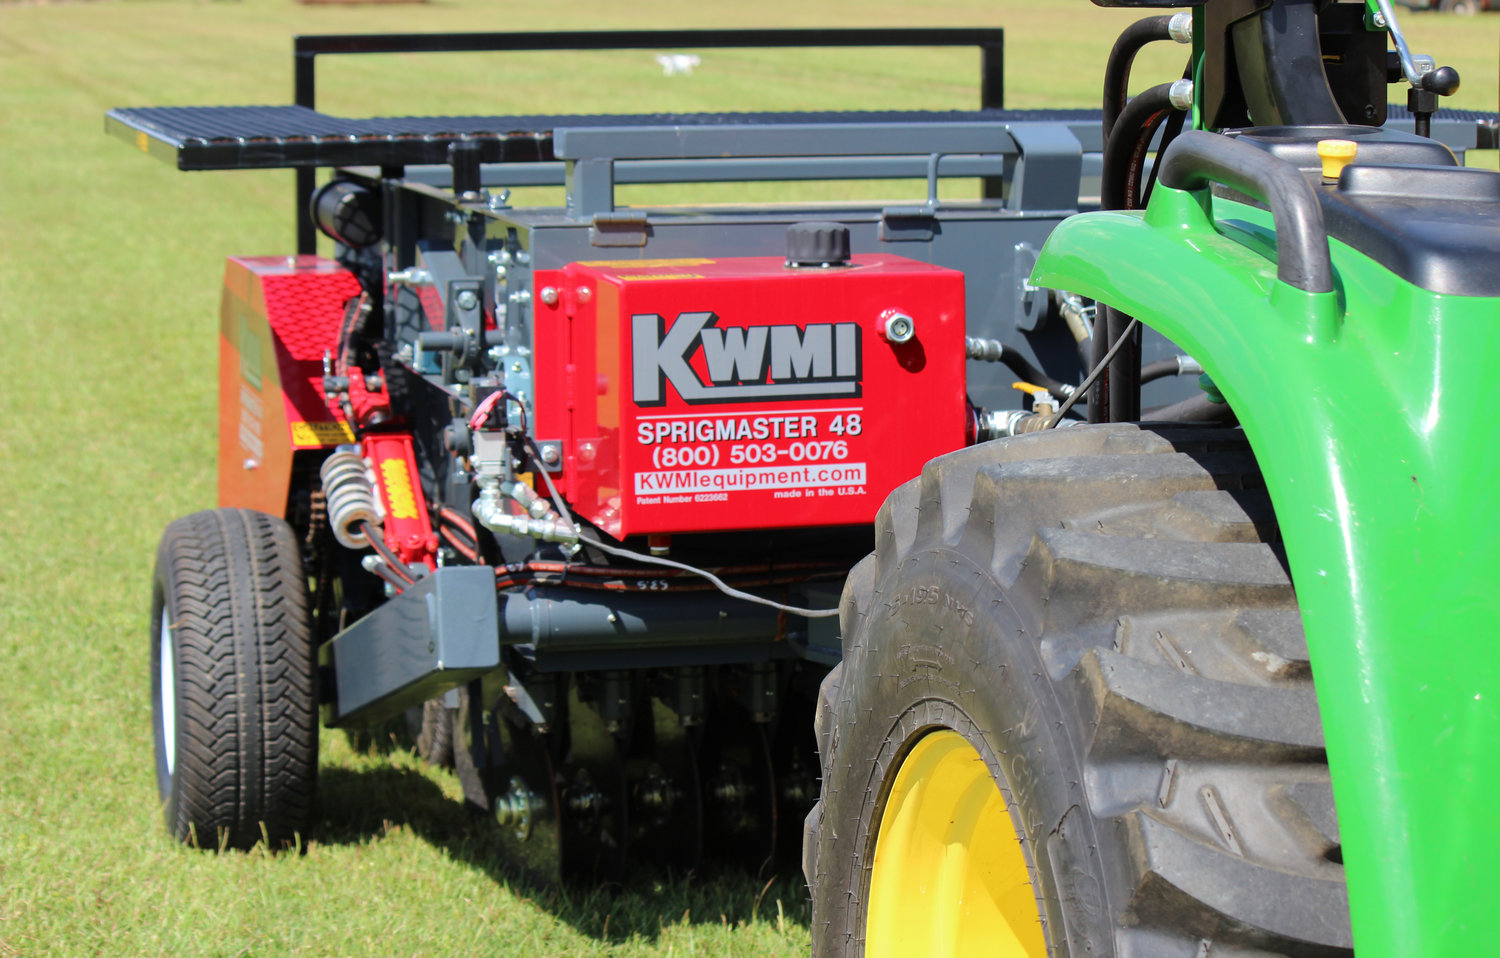 The Sprigmaster II- What You Need to Know — KWMI Turf and